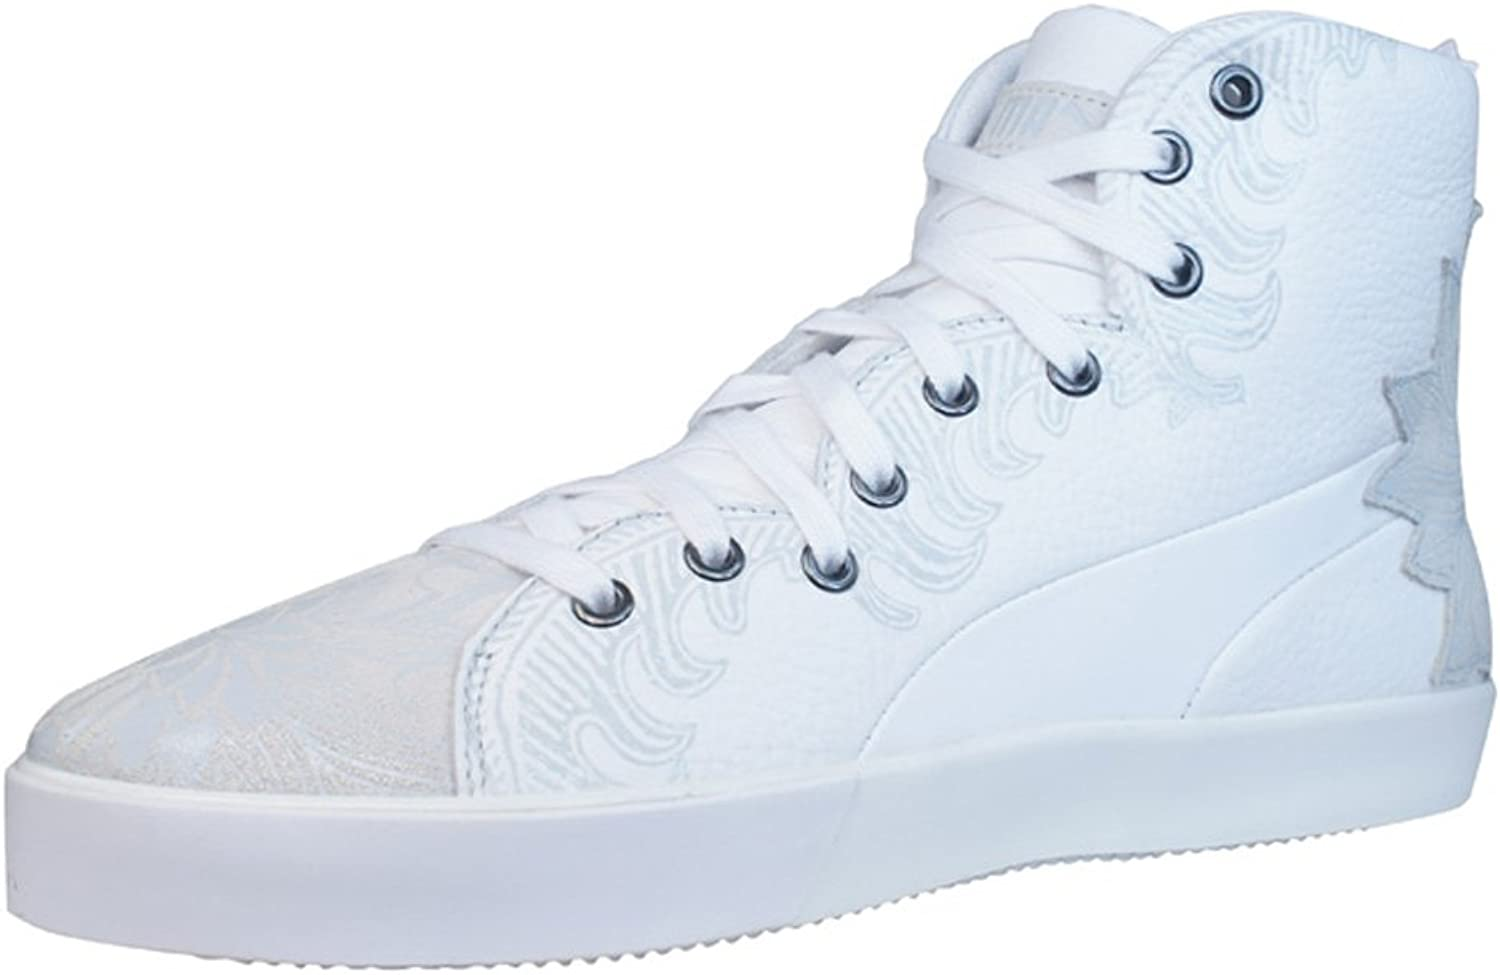 Puma 4M Mix Womens Leather Sneakers shoes - White